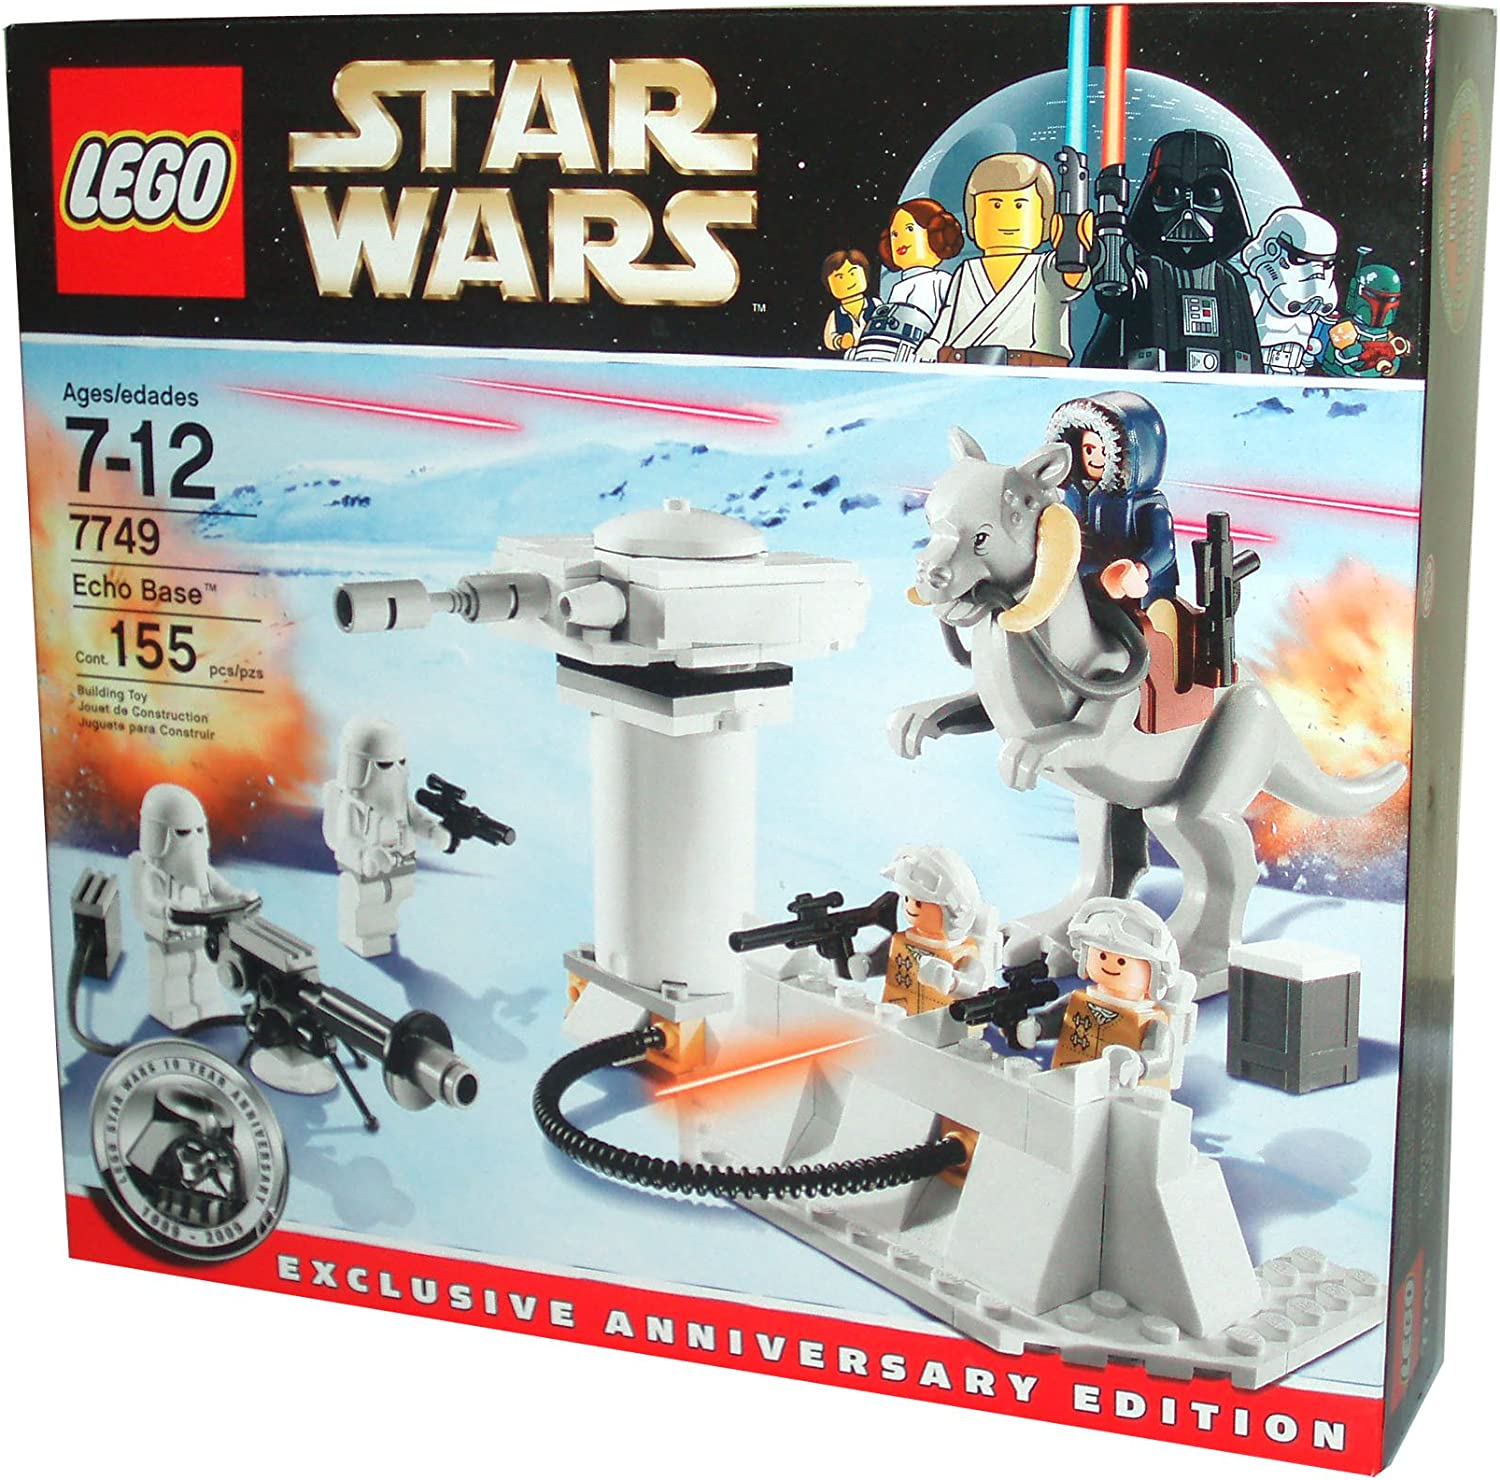 Lego Star Wars Series Exclusive Anniversary Edition Battle Scene Set # 7749 - ECHO BASE with 5 Minifigures (2 Snow Troopers with E-Web Blaster, 2 Rebel Troopers and Han Solo in Hoth Winter Gear) and Anti-Infantry Laser Battery with Opening Turret Door and Flick Fire Fissiles Plus First Time Ever Lego Tauntaun Figure (Total Pieces: 155)